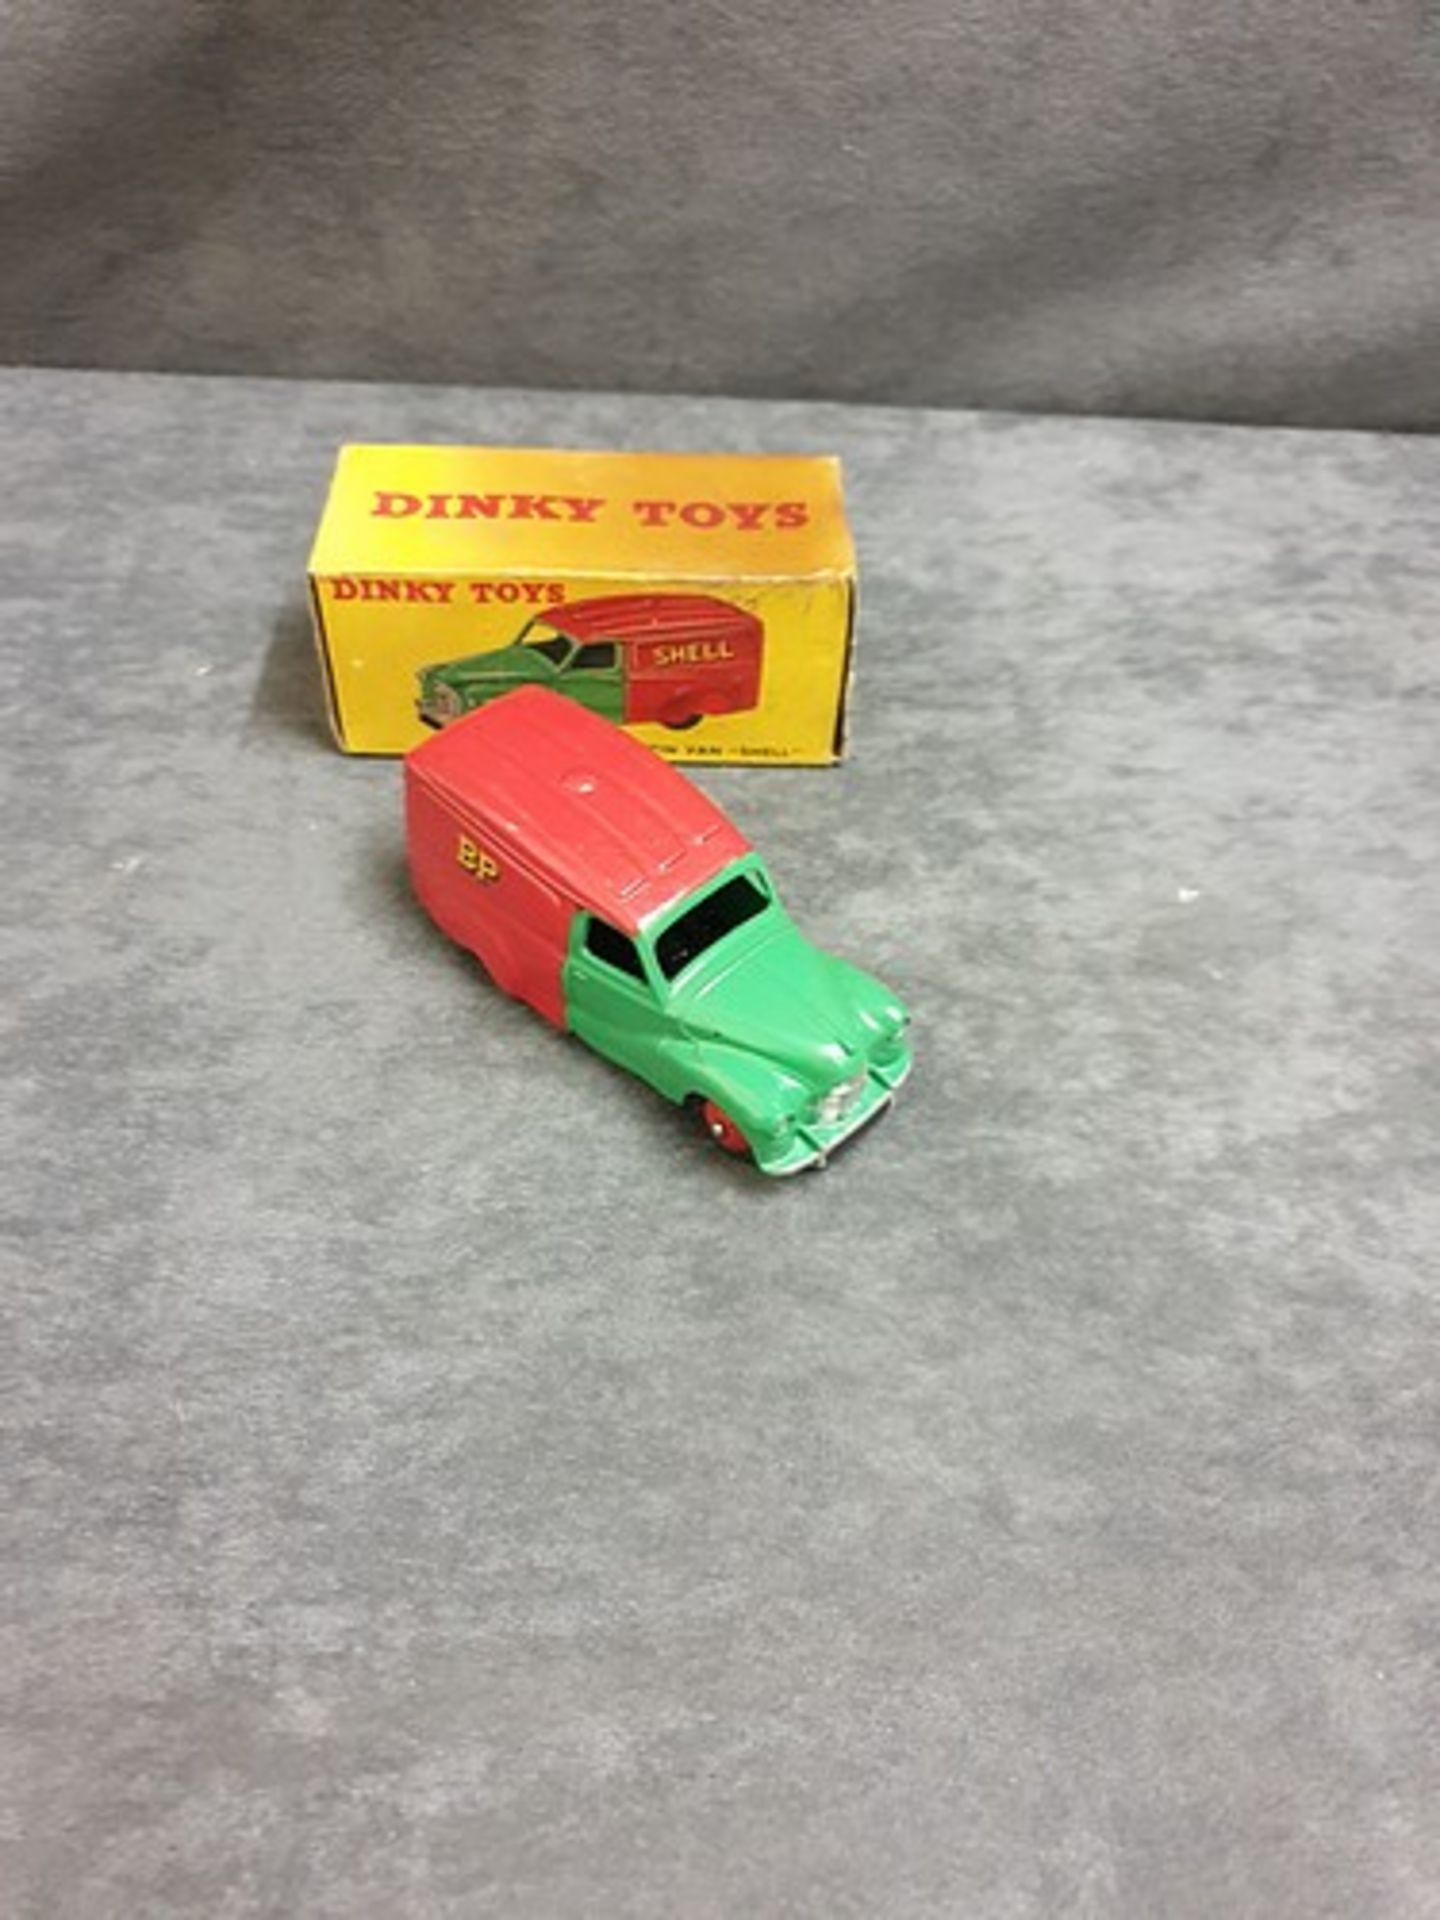 Dinky #470 Austin Van Shell Virtually Mint Model In Very Good Soiled Firm Box 1954 - 1956 - Image 2 of 3